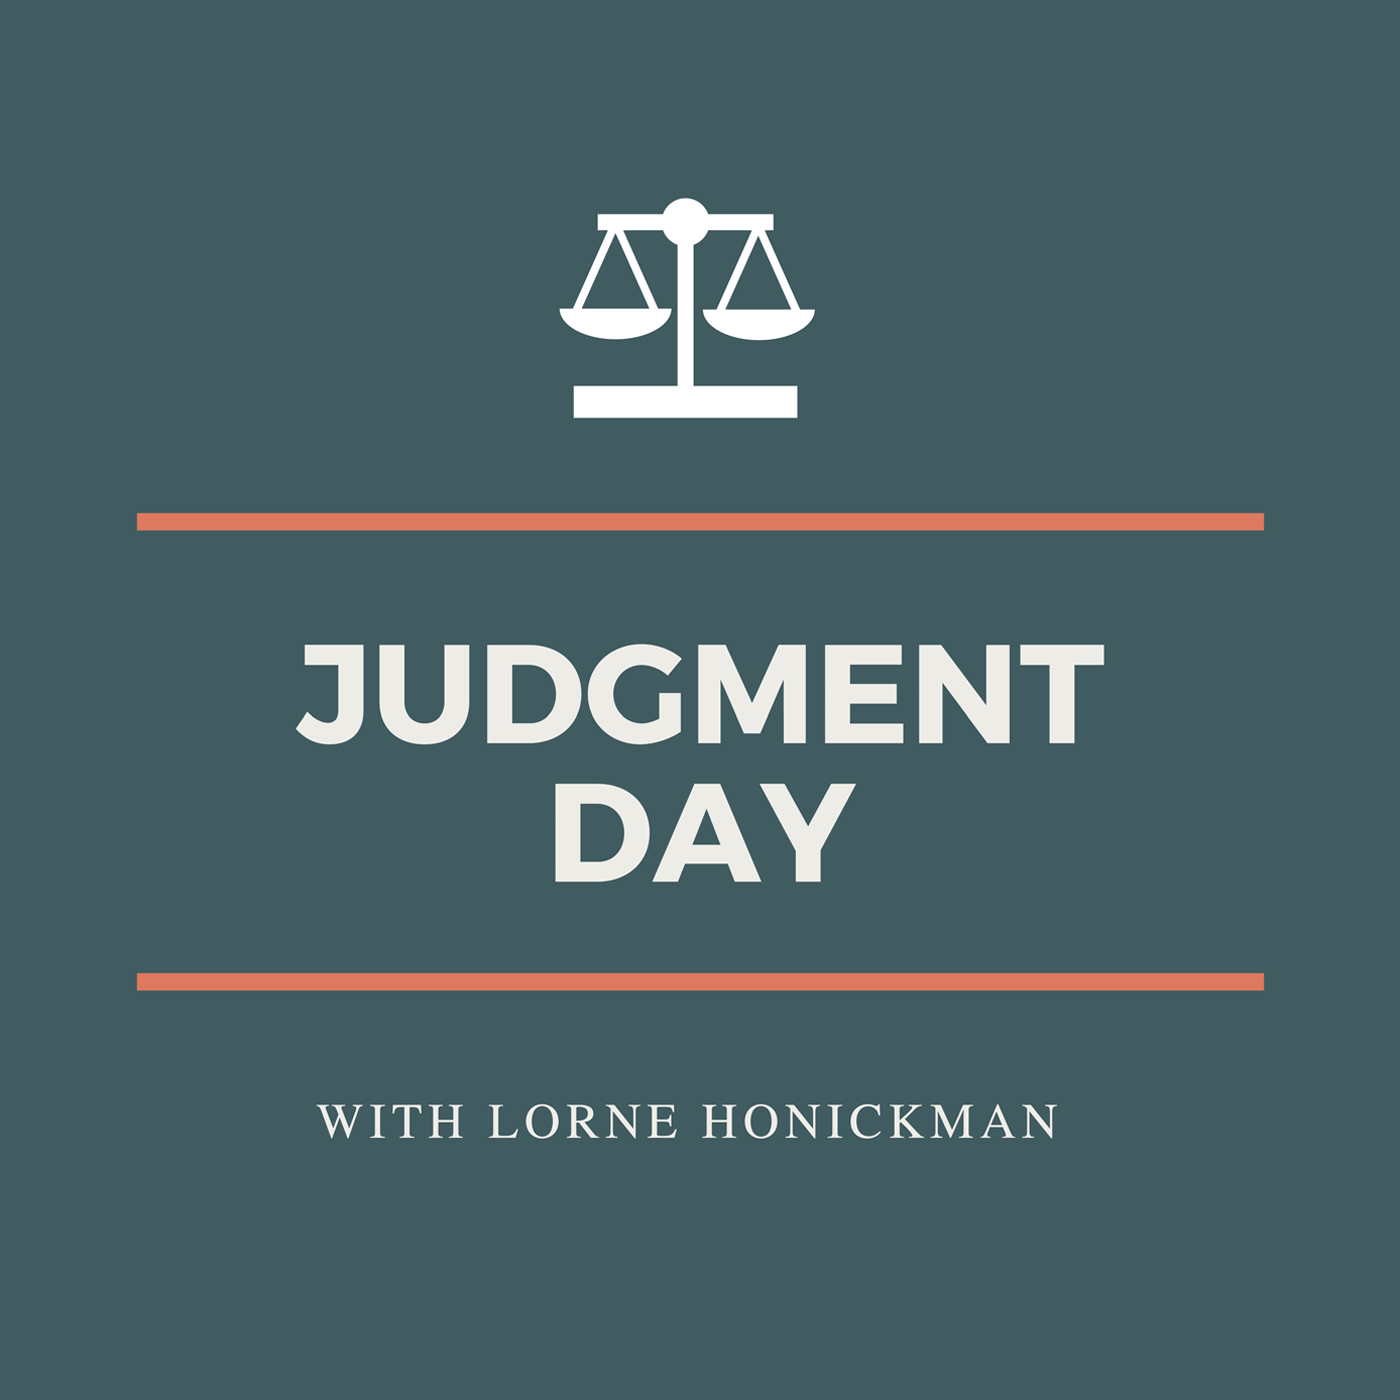 Introducing Judgment Day with Lorne Honickman